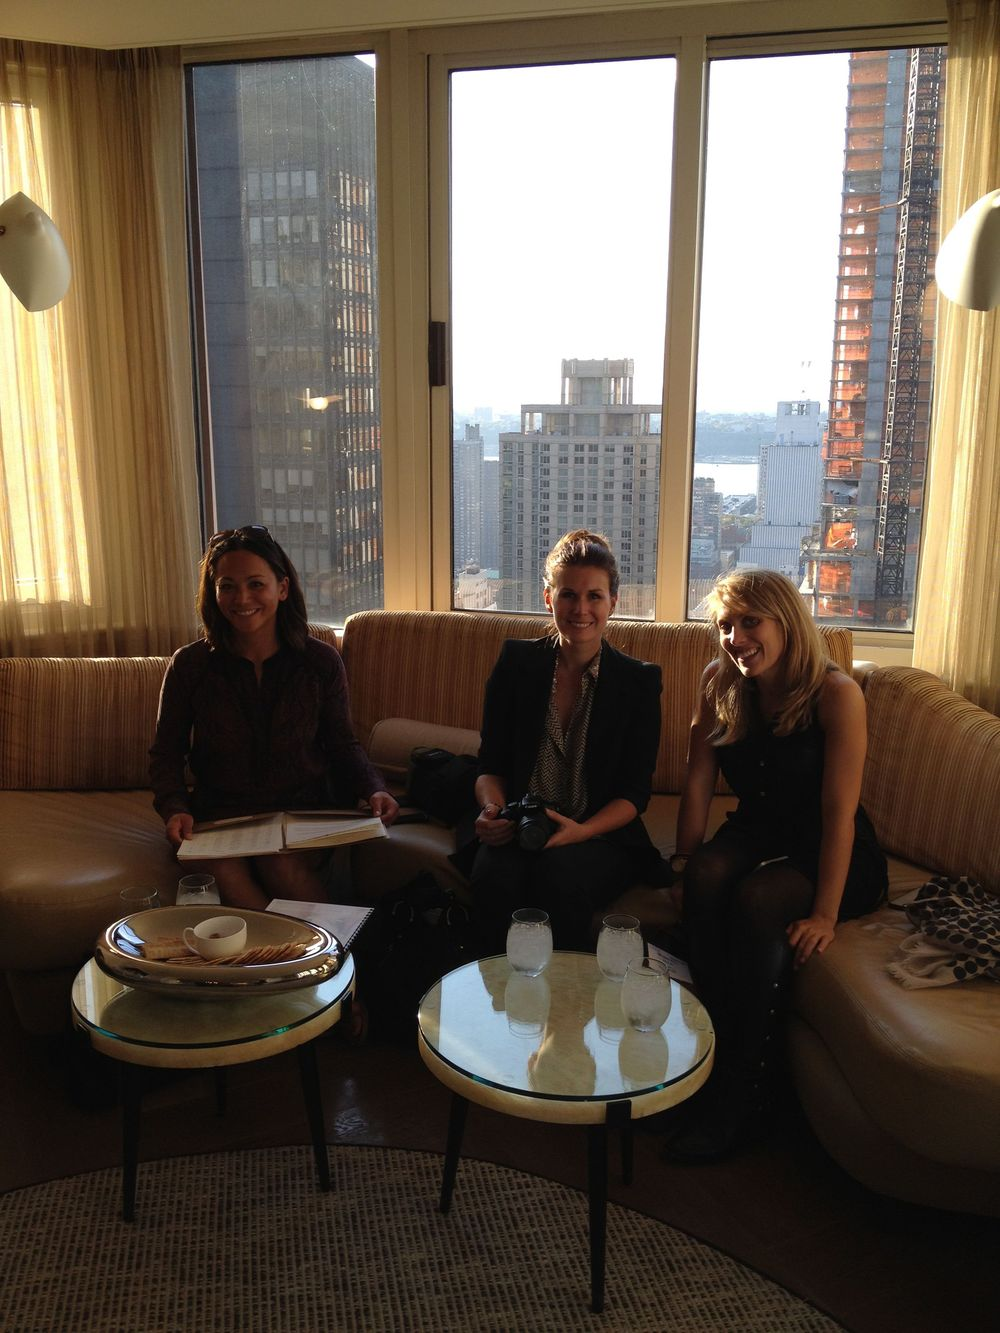 Anna, Chelsea, and Melissa wait for our Amy Kuschel appointment to begin in The London hotel